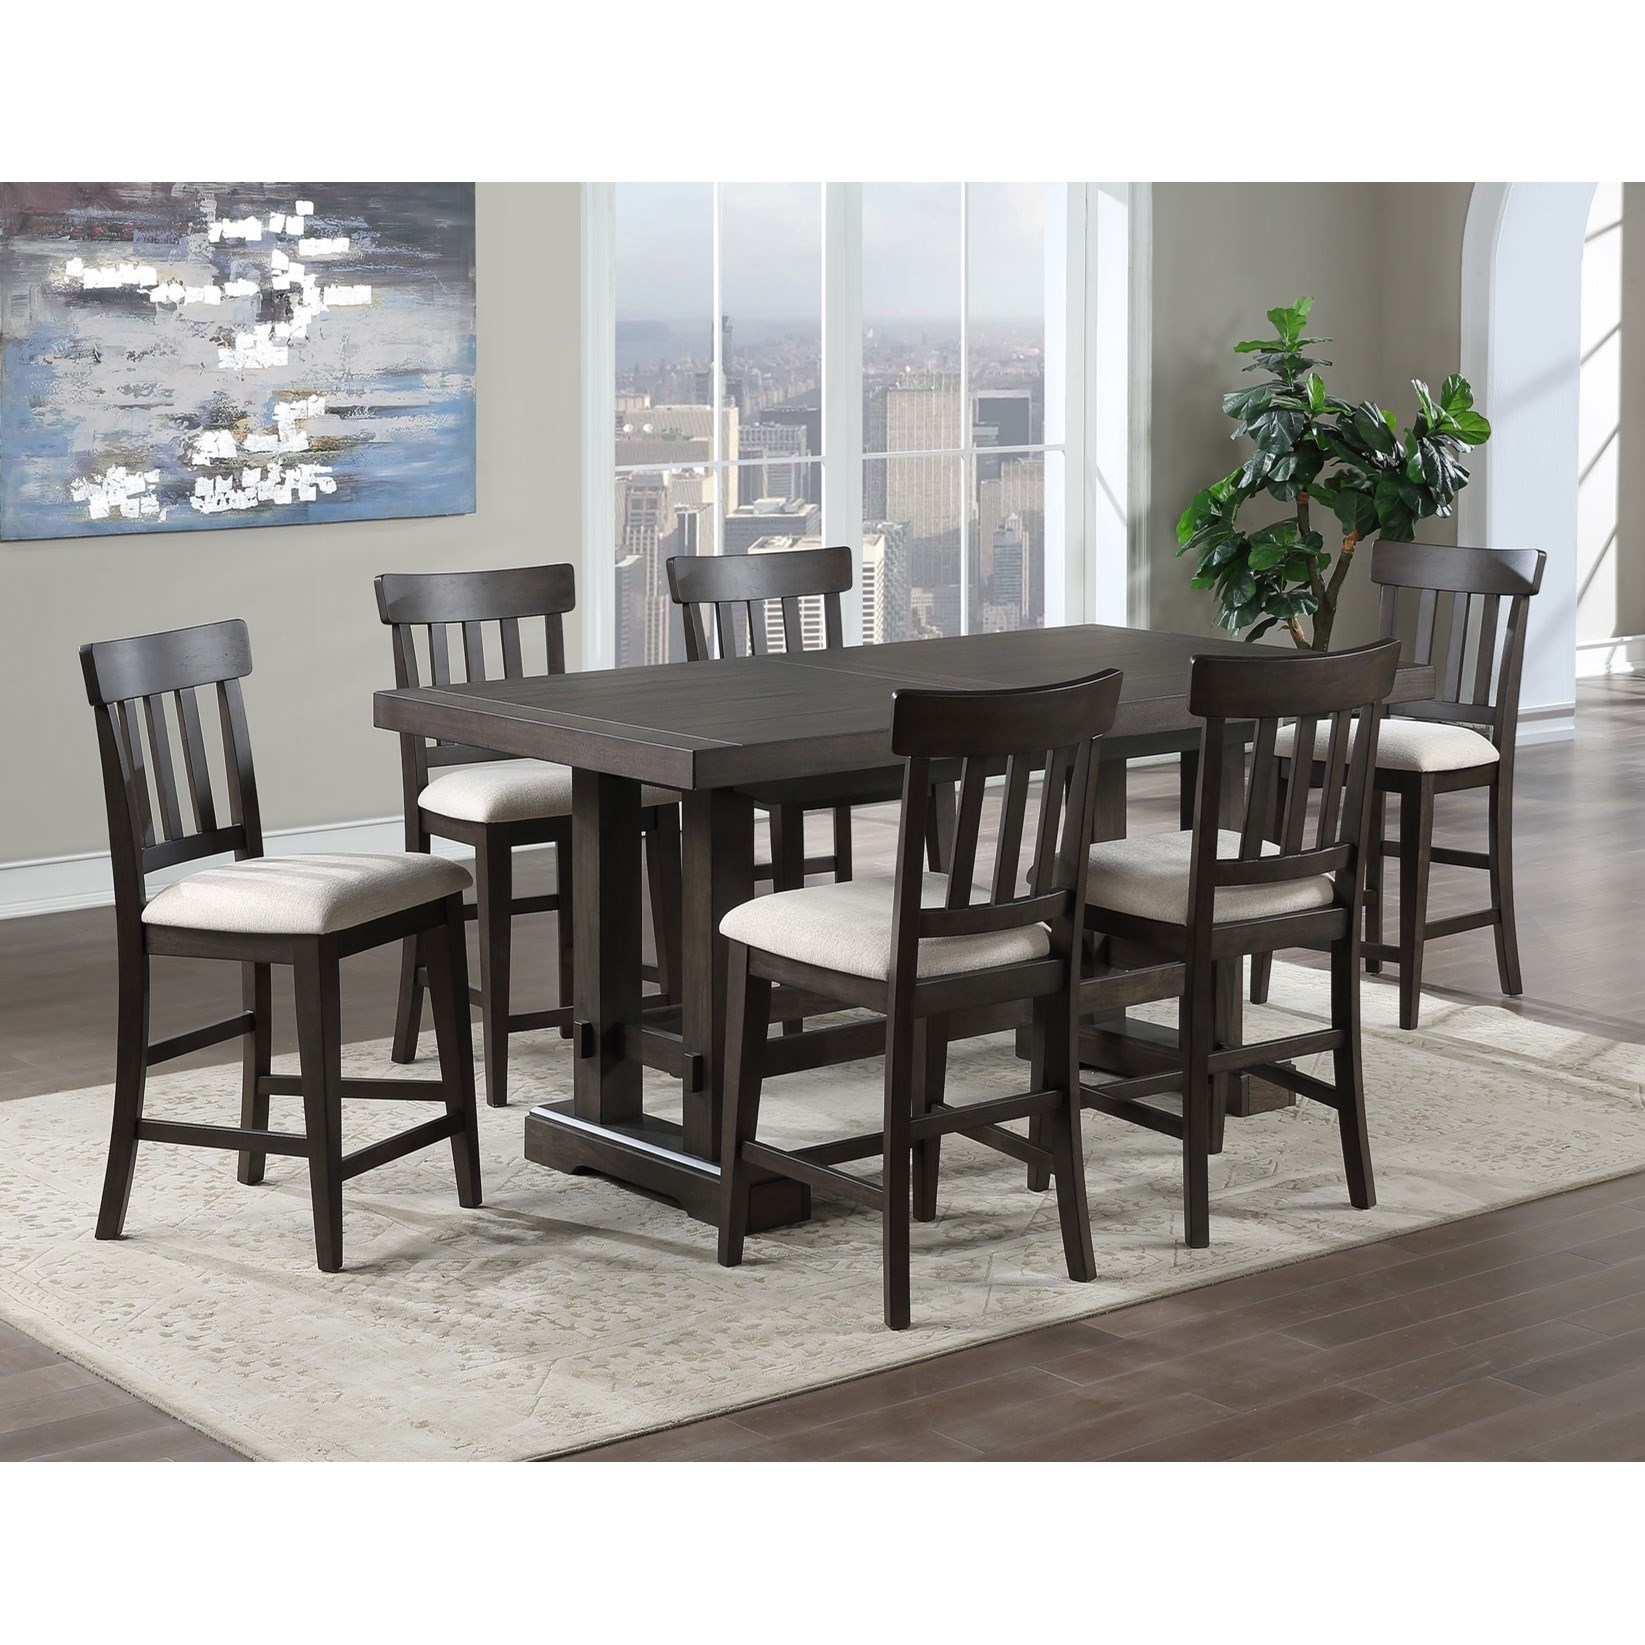 Napa 7-Piece Counter Height Dining Set by Steve Silver at Walker's Furniture